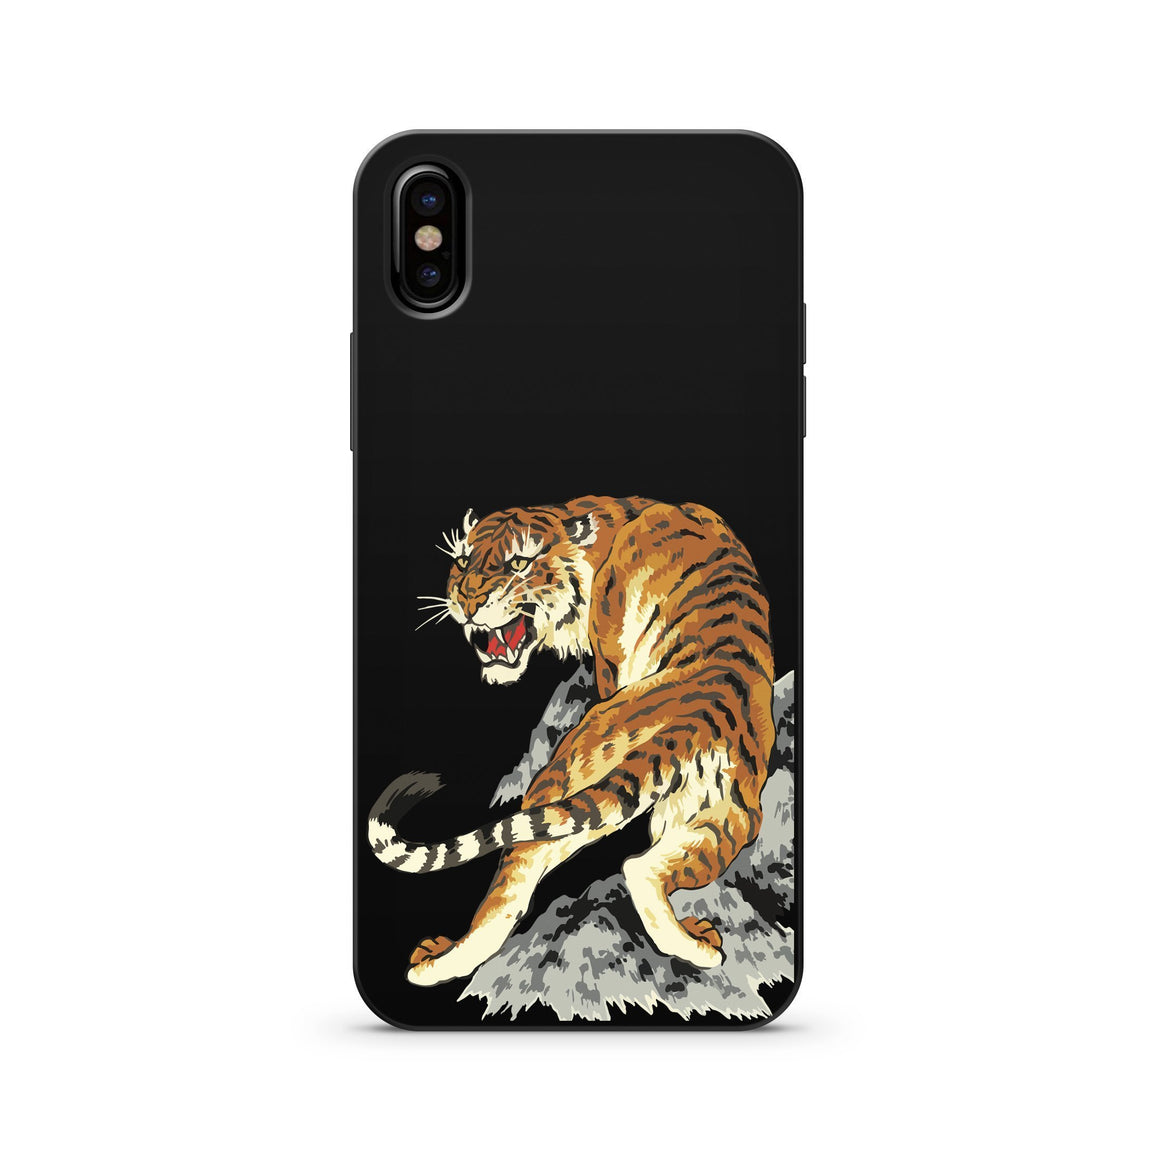 Tiger Black Wood Printed Case iPhone